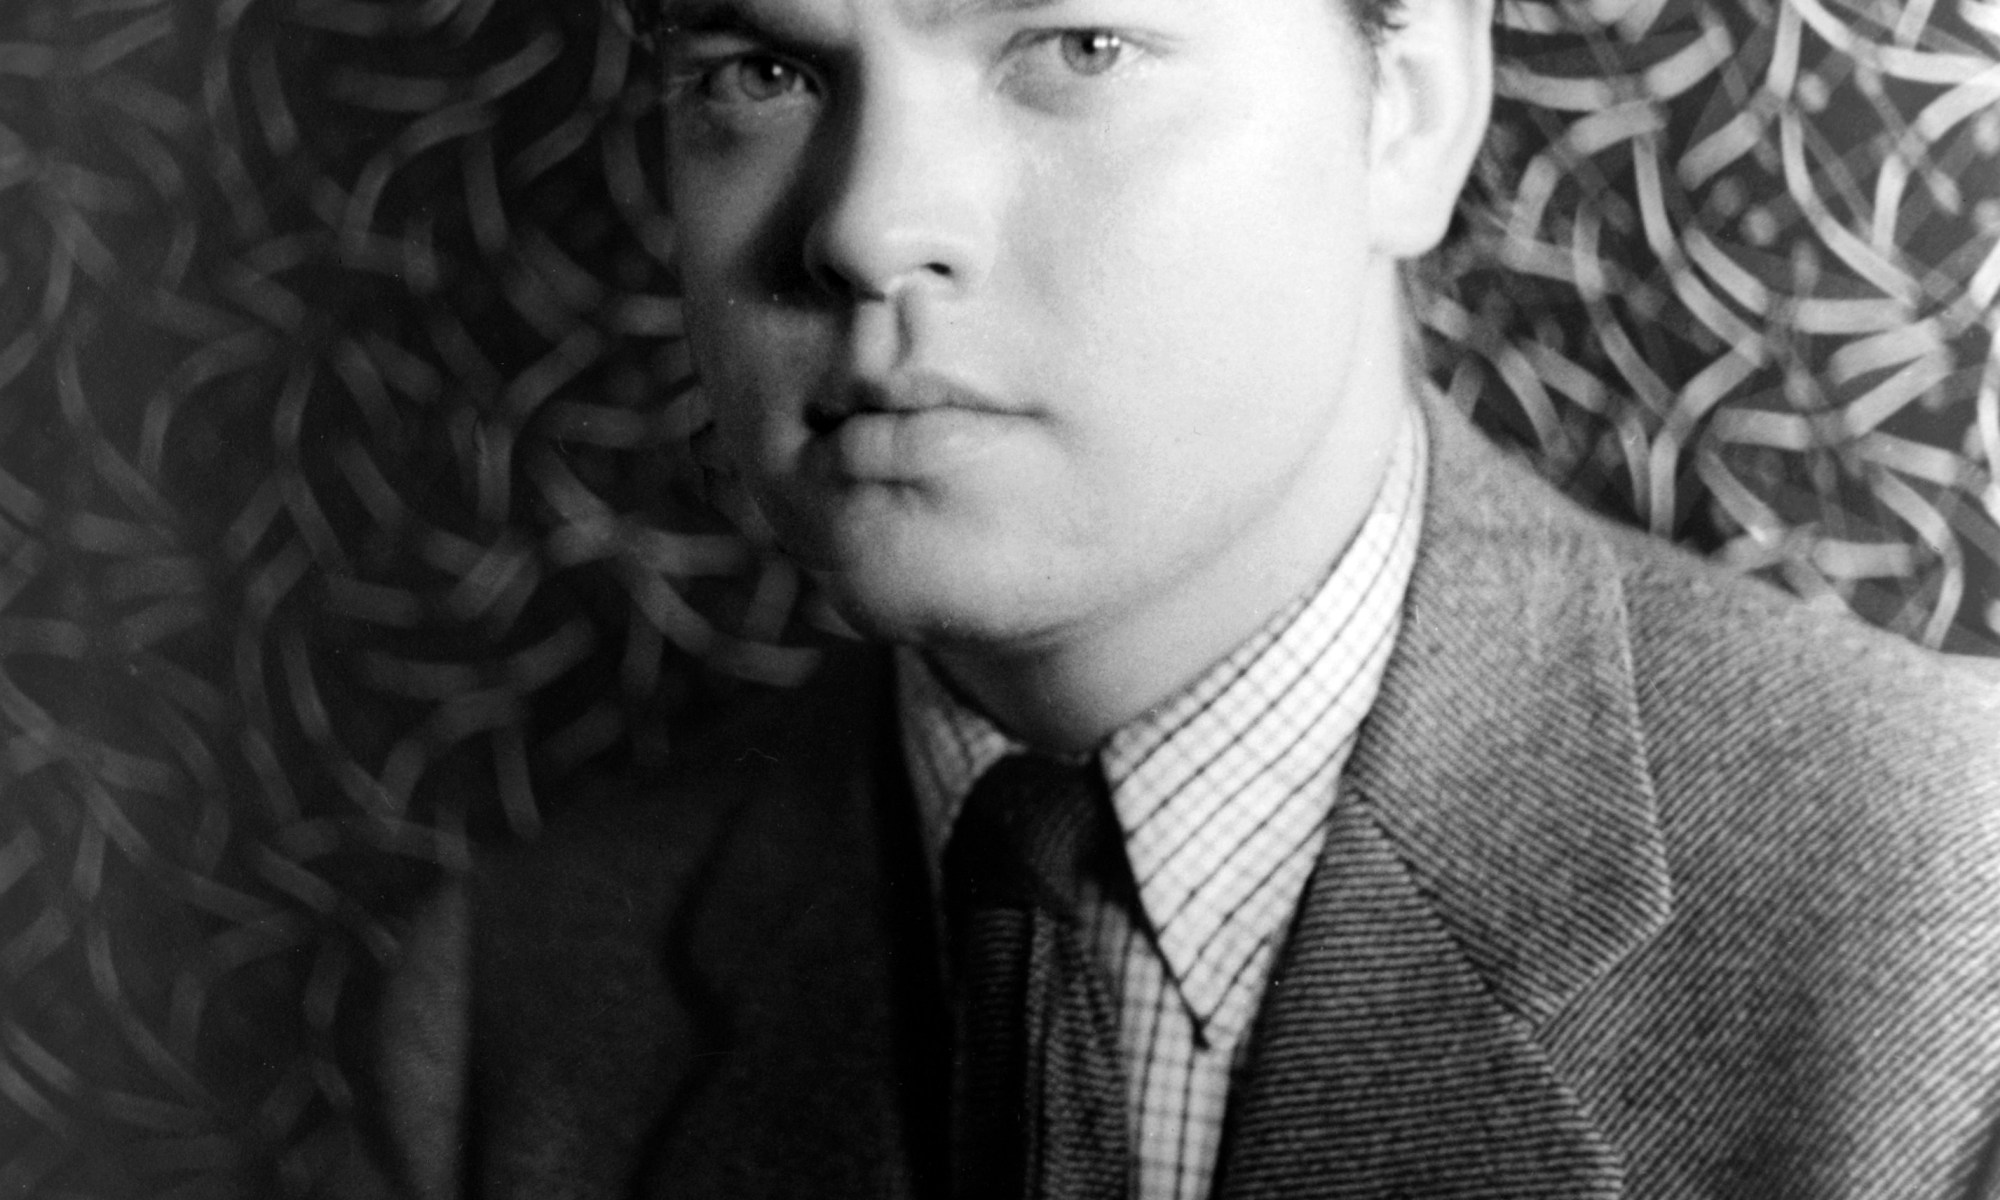 Orson Welles and War of the Worlds